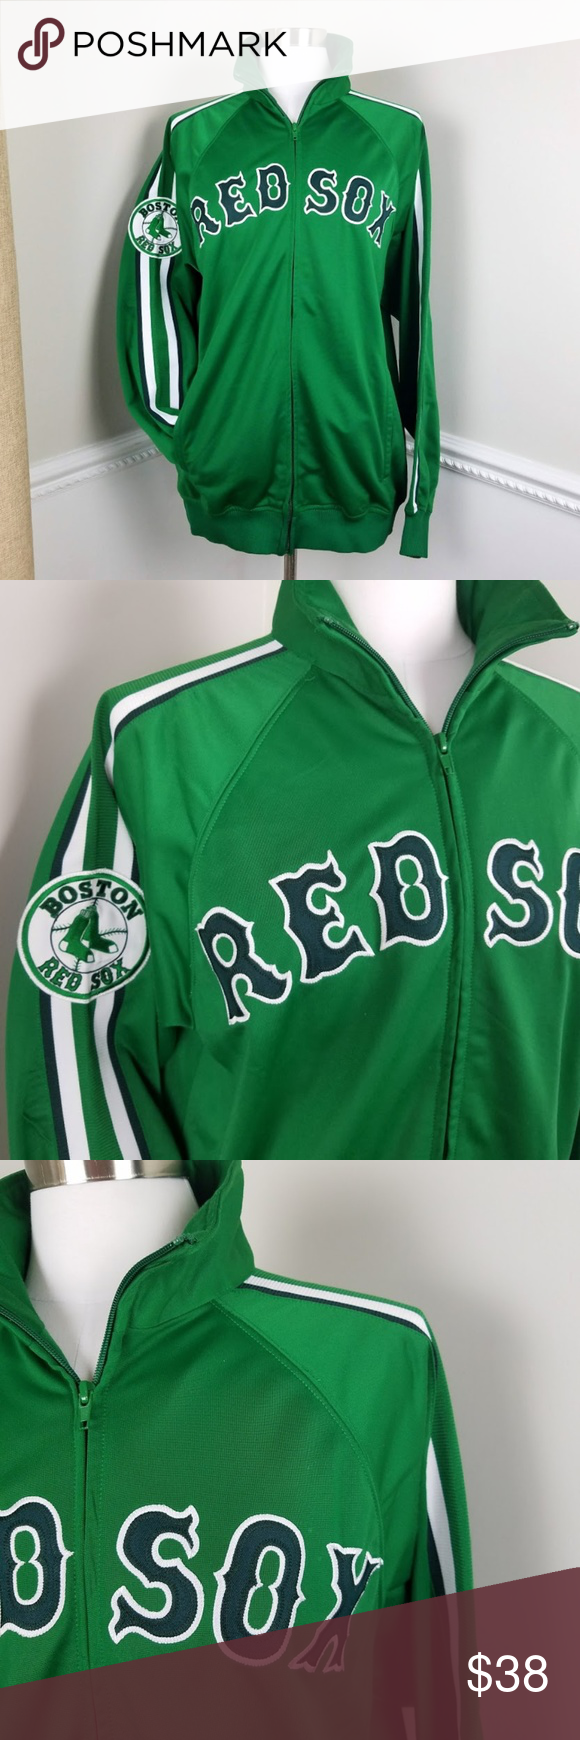 Stitches Athletic Gear Green Red Sox Track Jacket Stitches Athletic